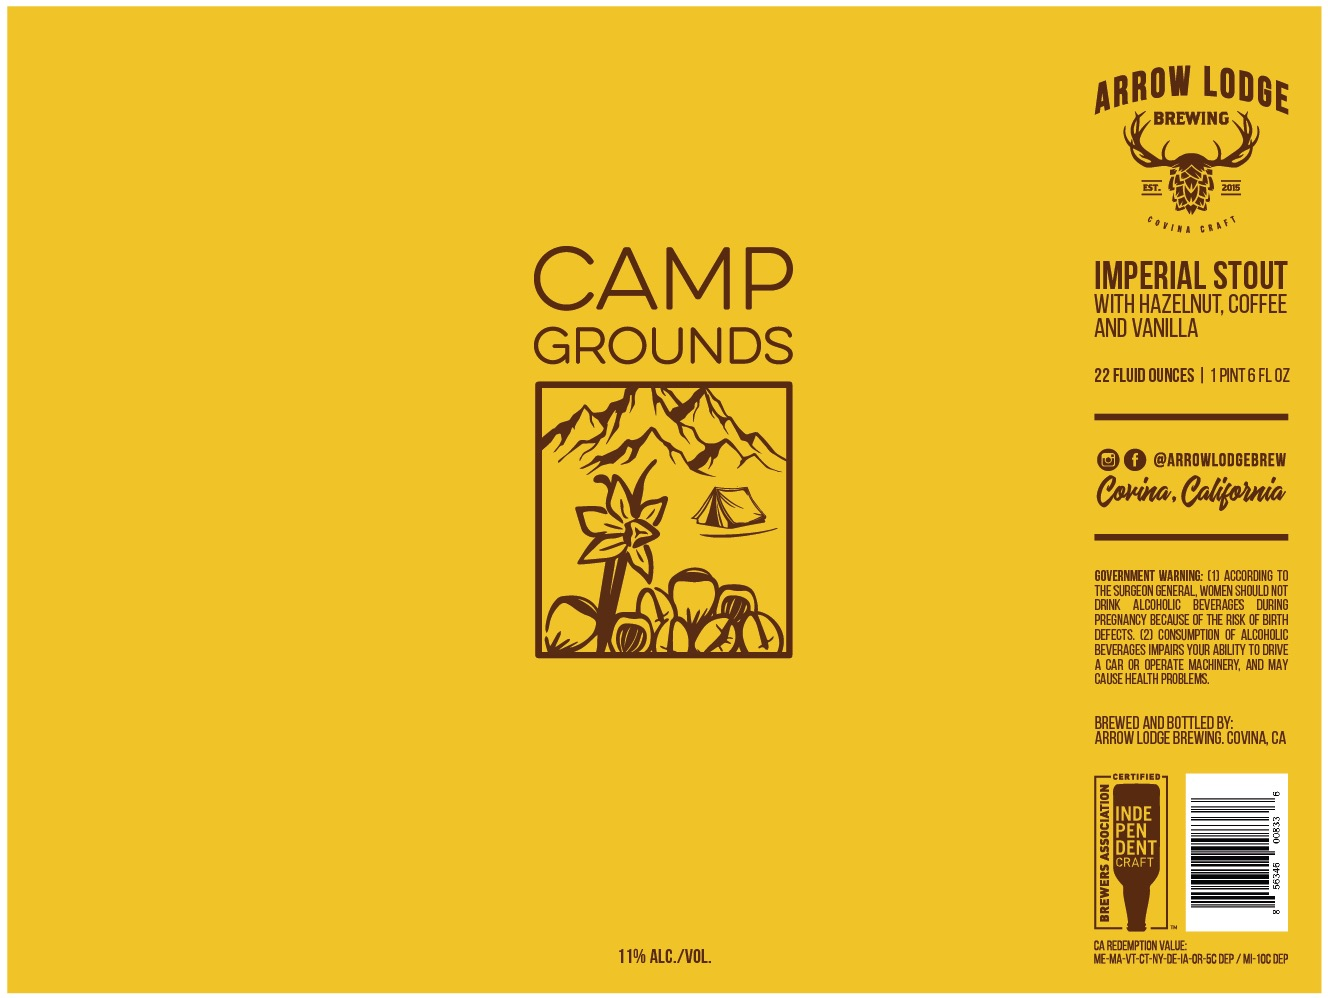 CAMP GROUNDS - IMPERIAL STOUT w/ HAZELNUT, COFFEE AND VANILLA11% ABV